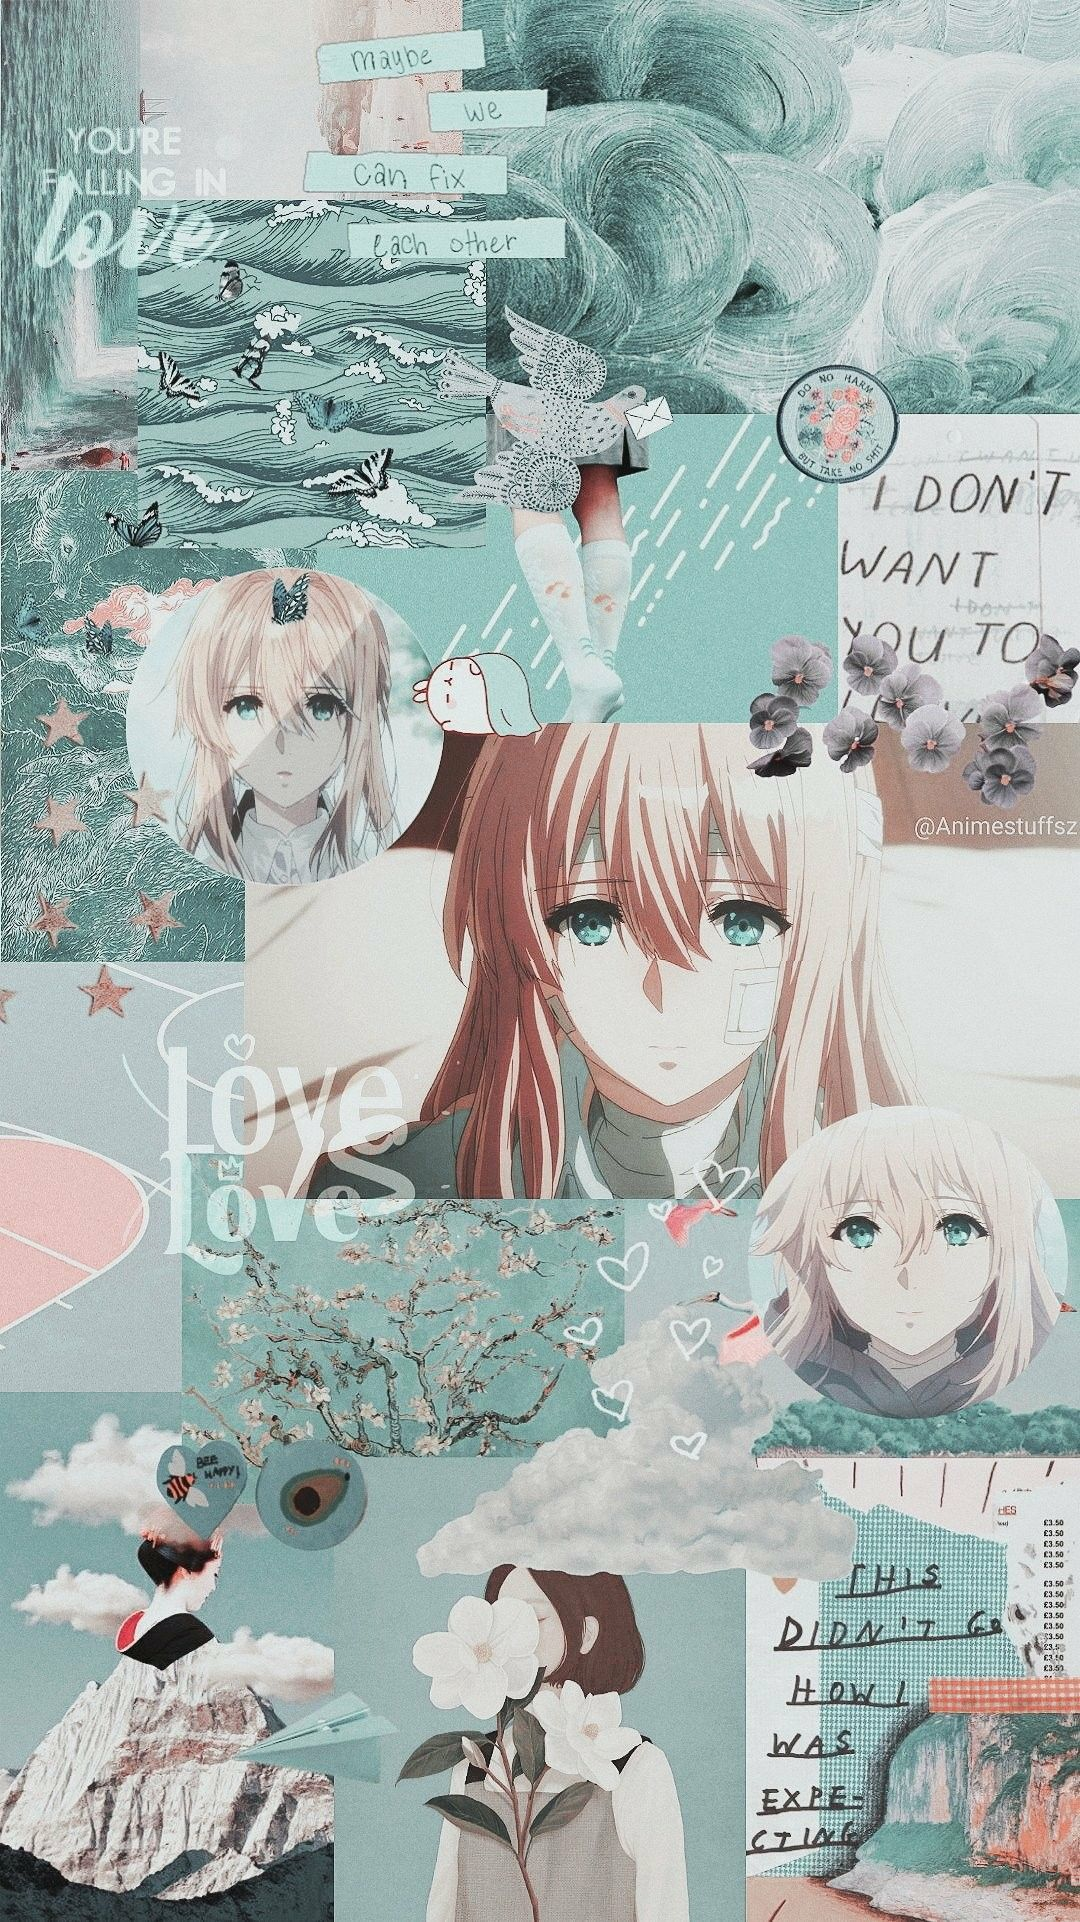 Get Latest Aesthetic Anime Wallpaper Iphone In 2020 Aesthetic Anime Violet Evergarden Anime Anime Wallpaper Iphone